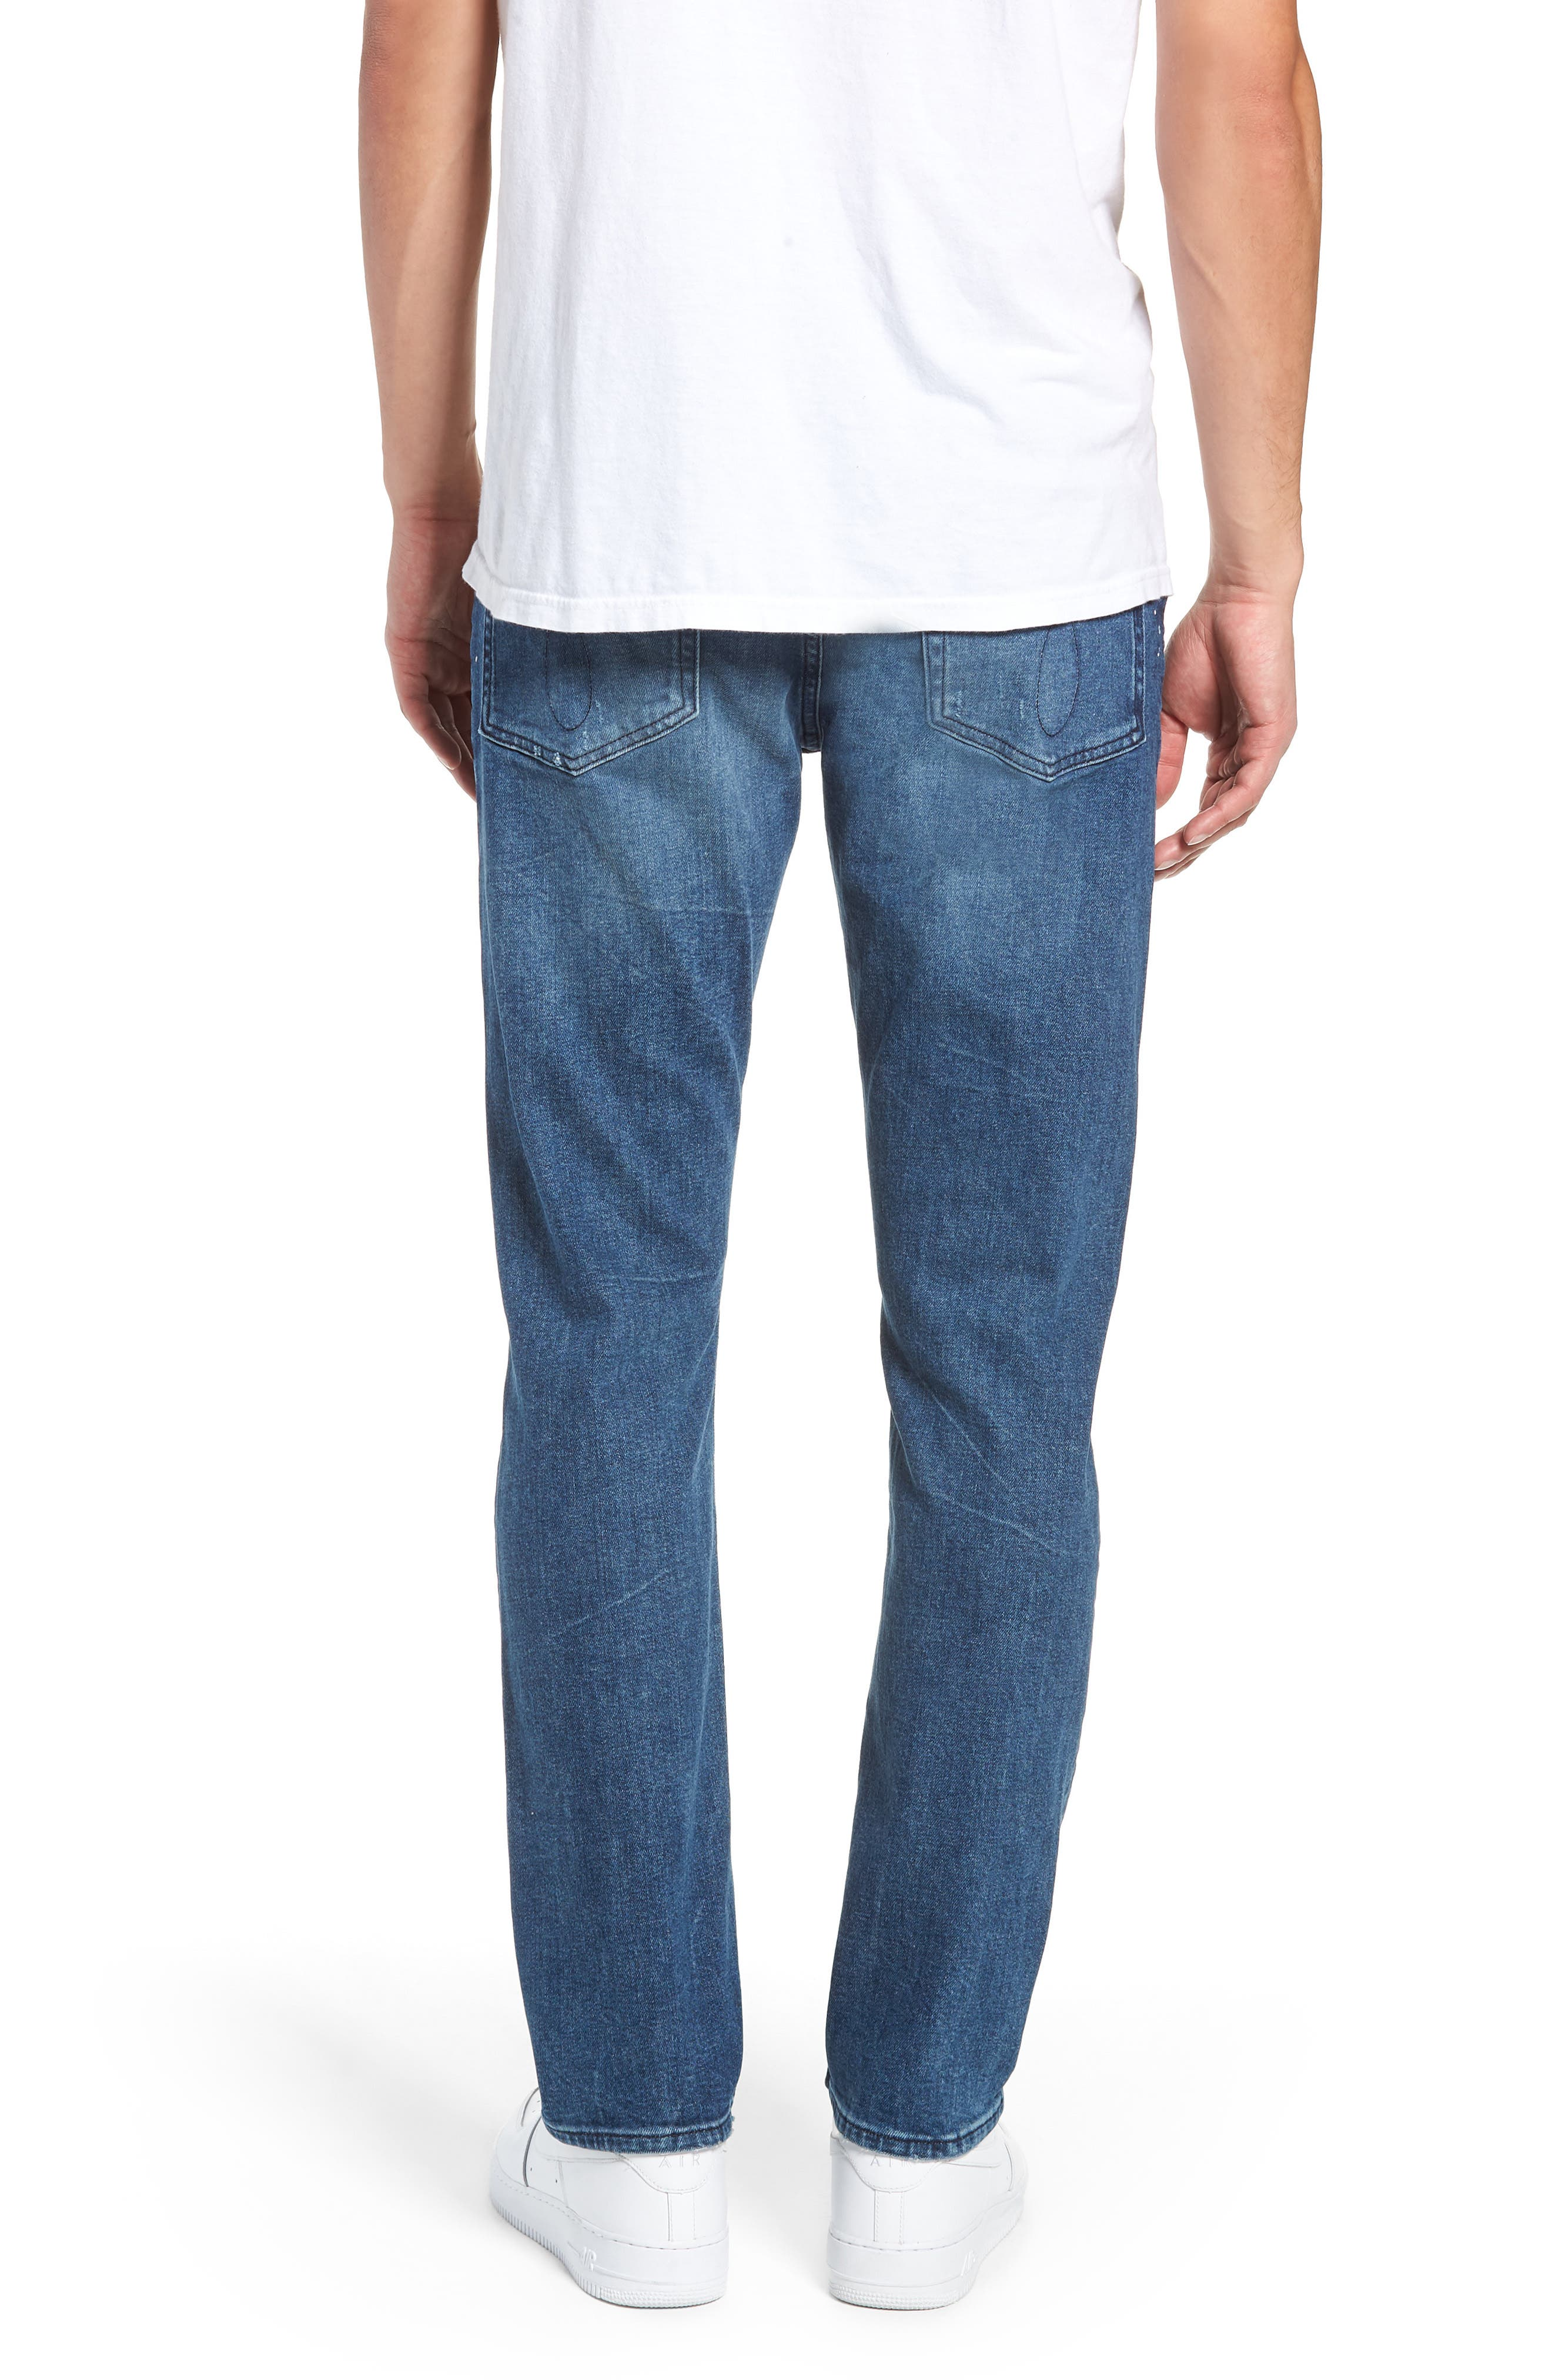 Calvin Klein Slim Fit Jeans,                             Alternate thumbnail 2, color,                             KINGPIN BLUE